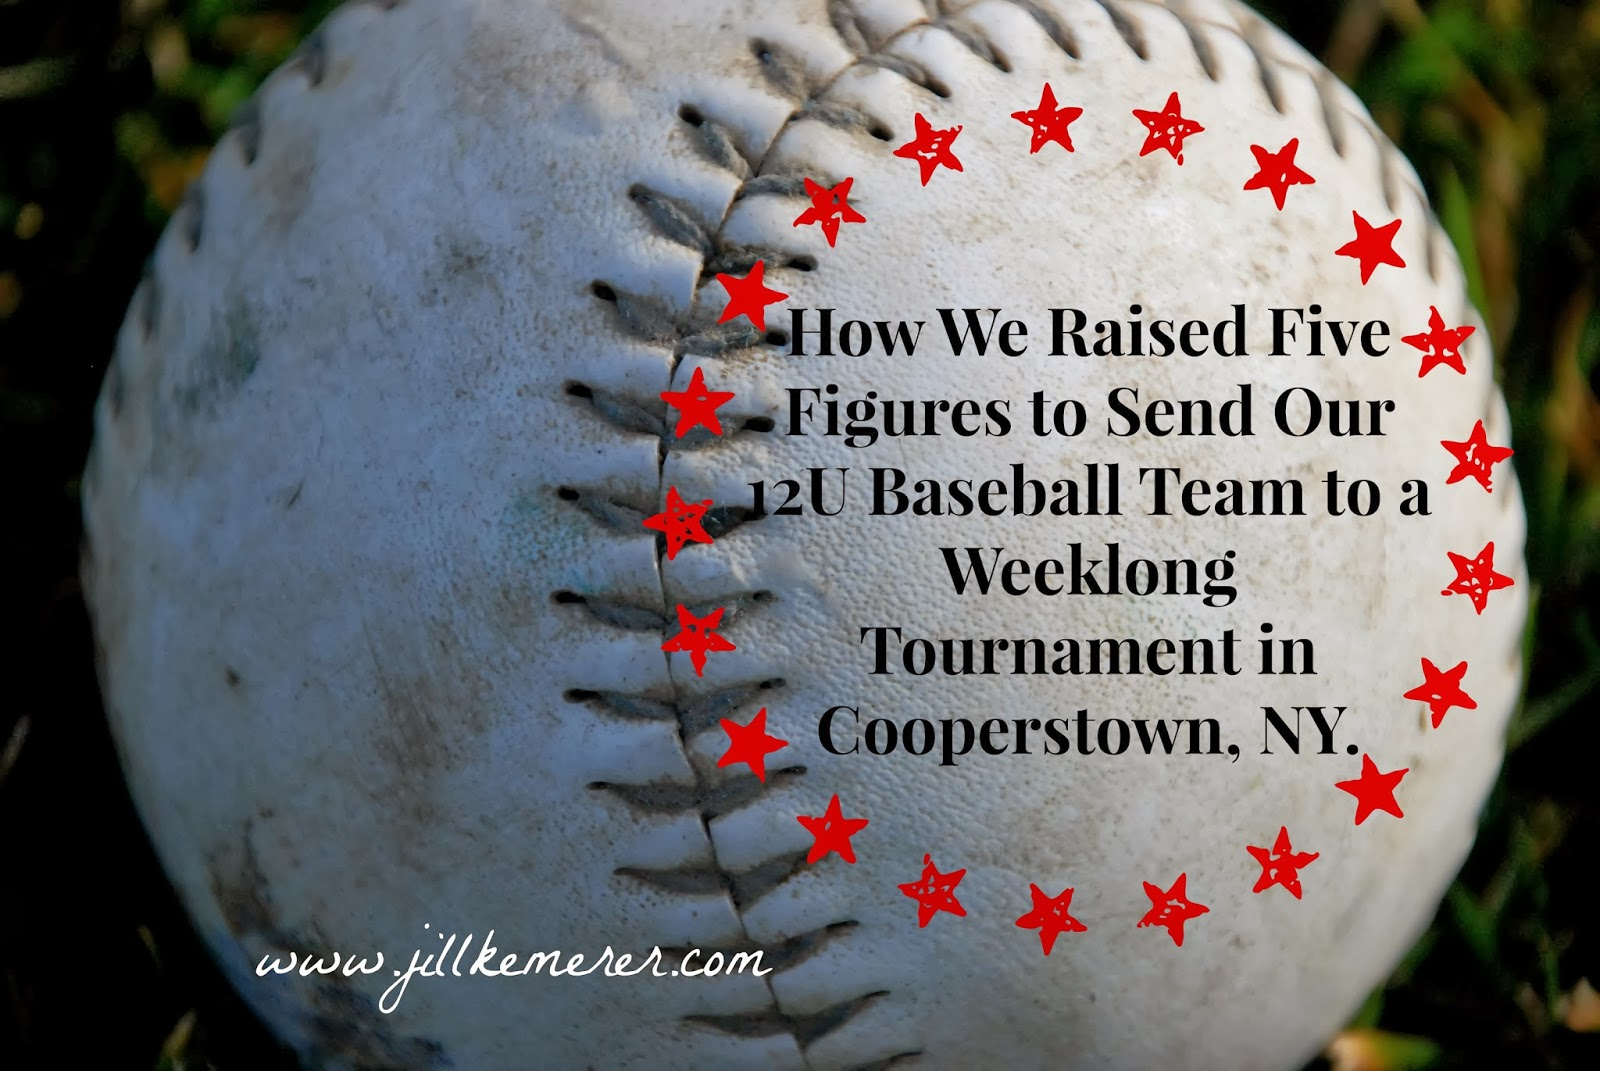 Fundraising Methods for Youth Sports Teams